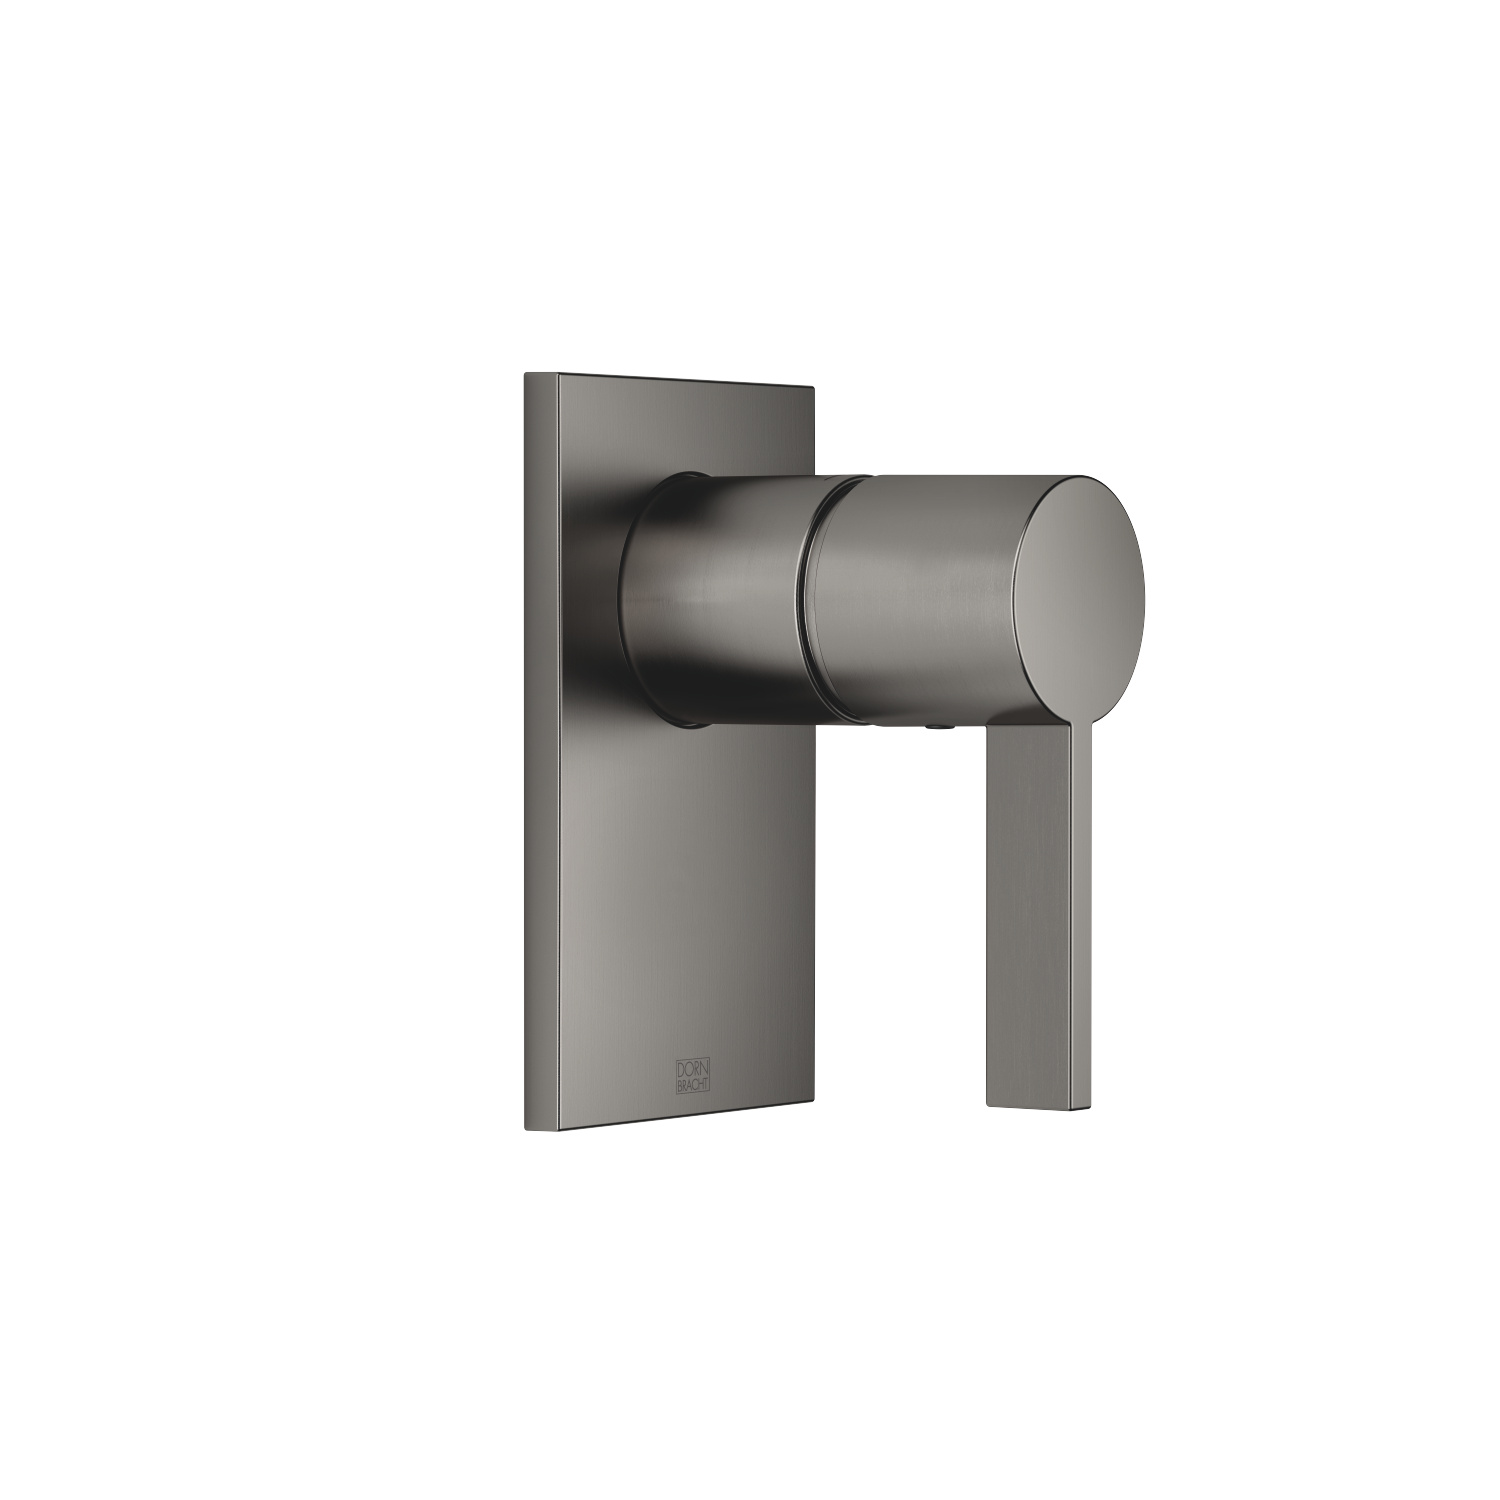 Concealed single-lever mixer without diverter - Dark Platinum matt